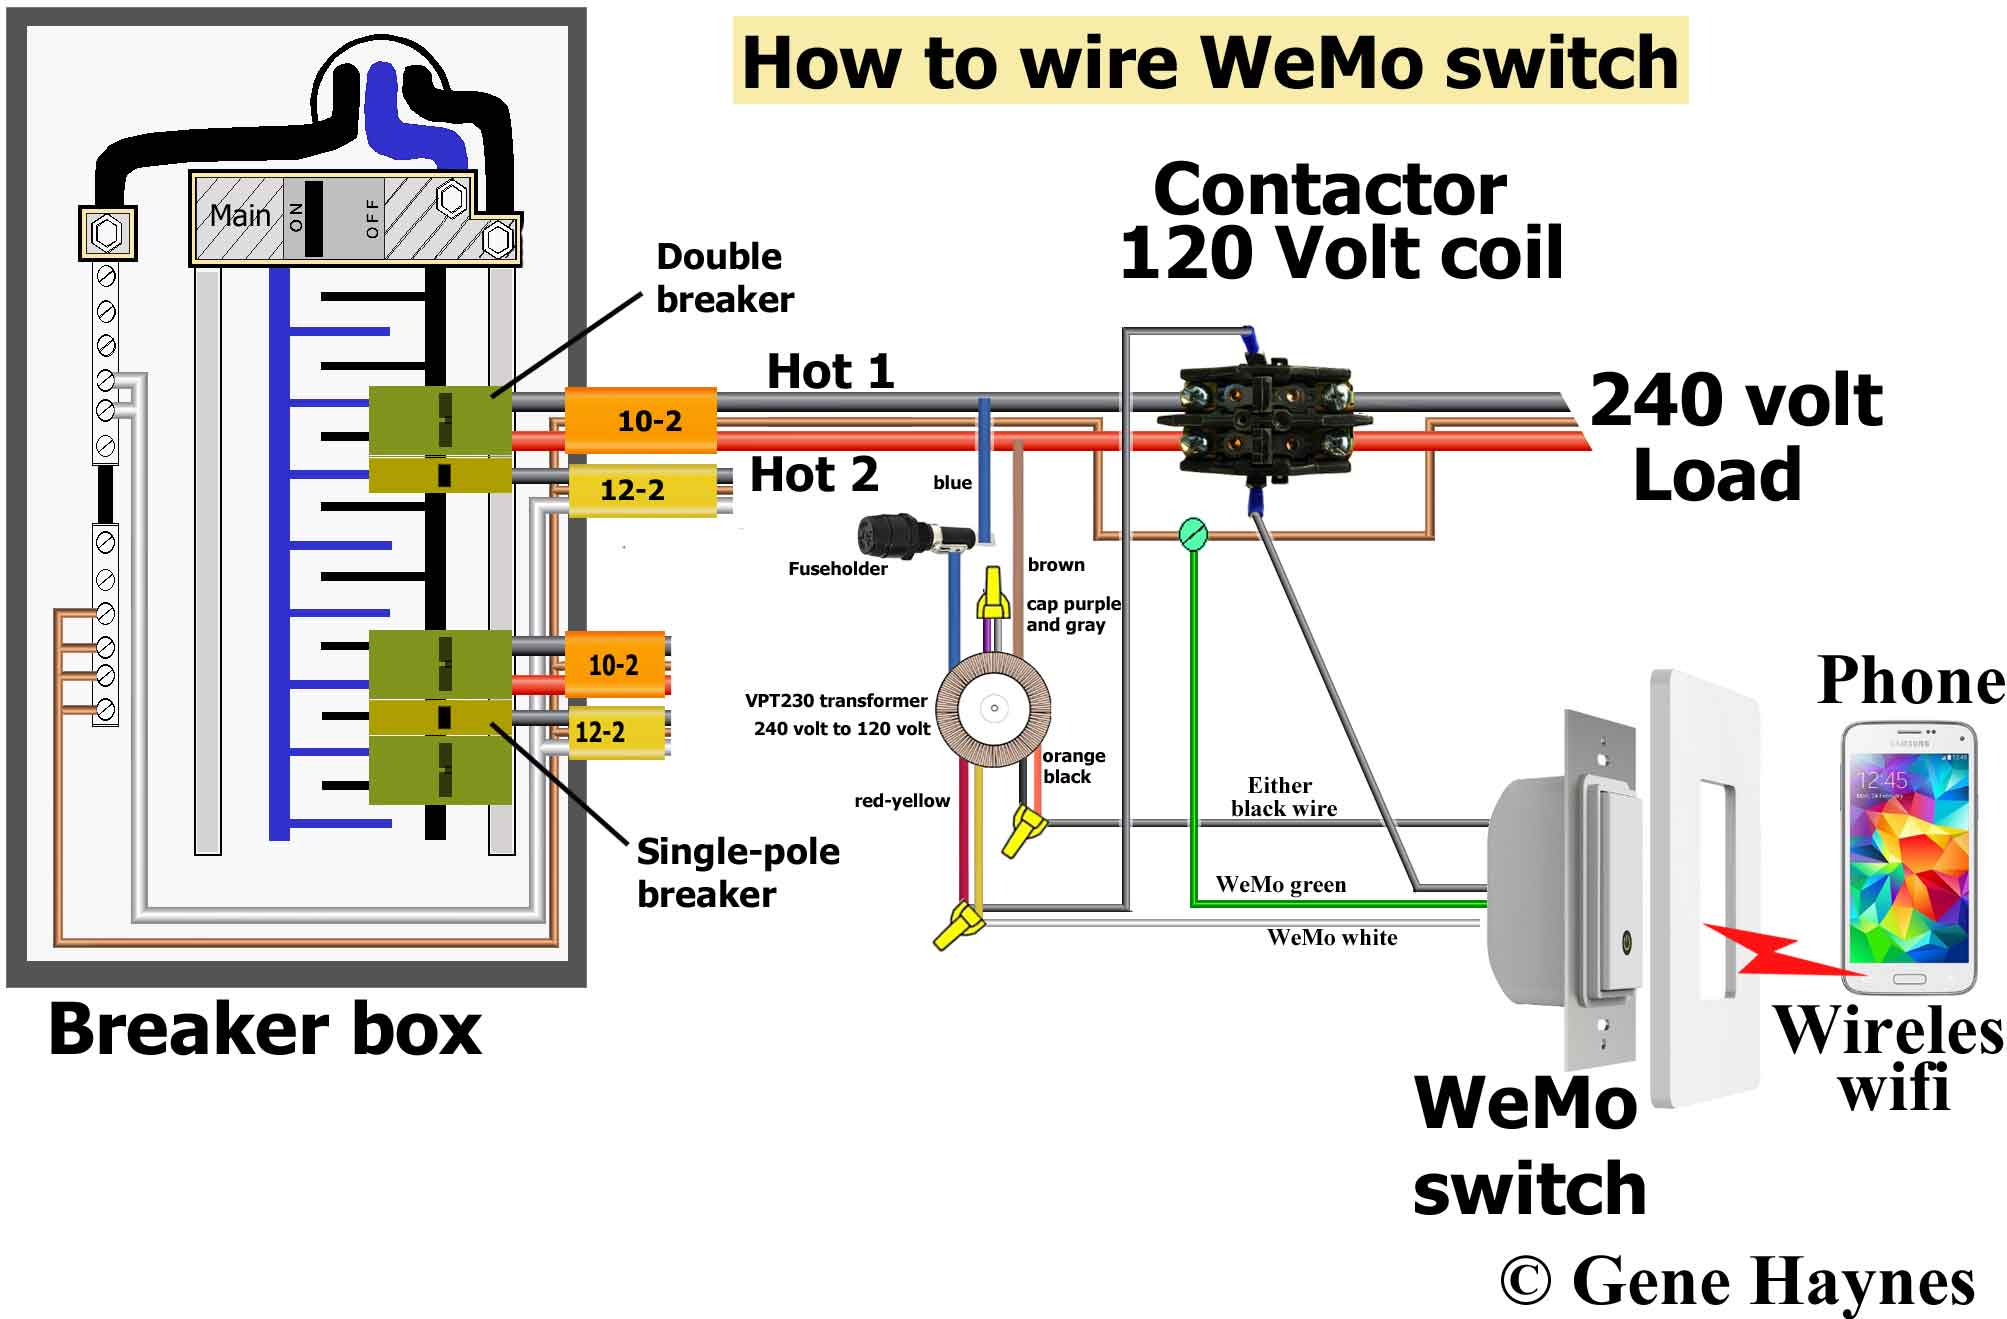 WeMo switch wiring illustration 32a control 240 volt with wemo wire diagram for 240 volt wall heater at bakdesigns.co